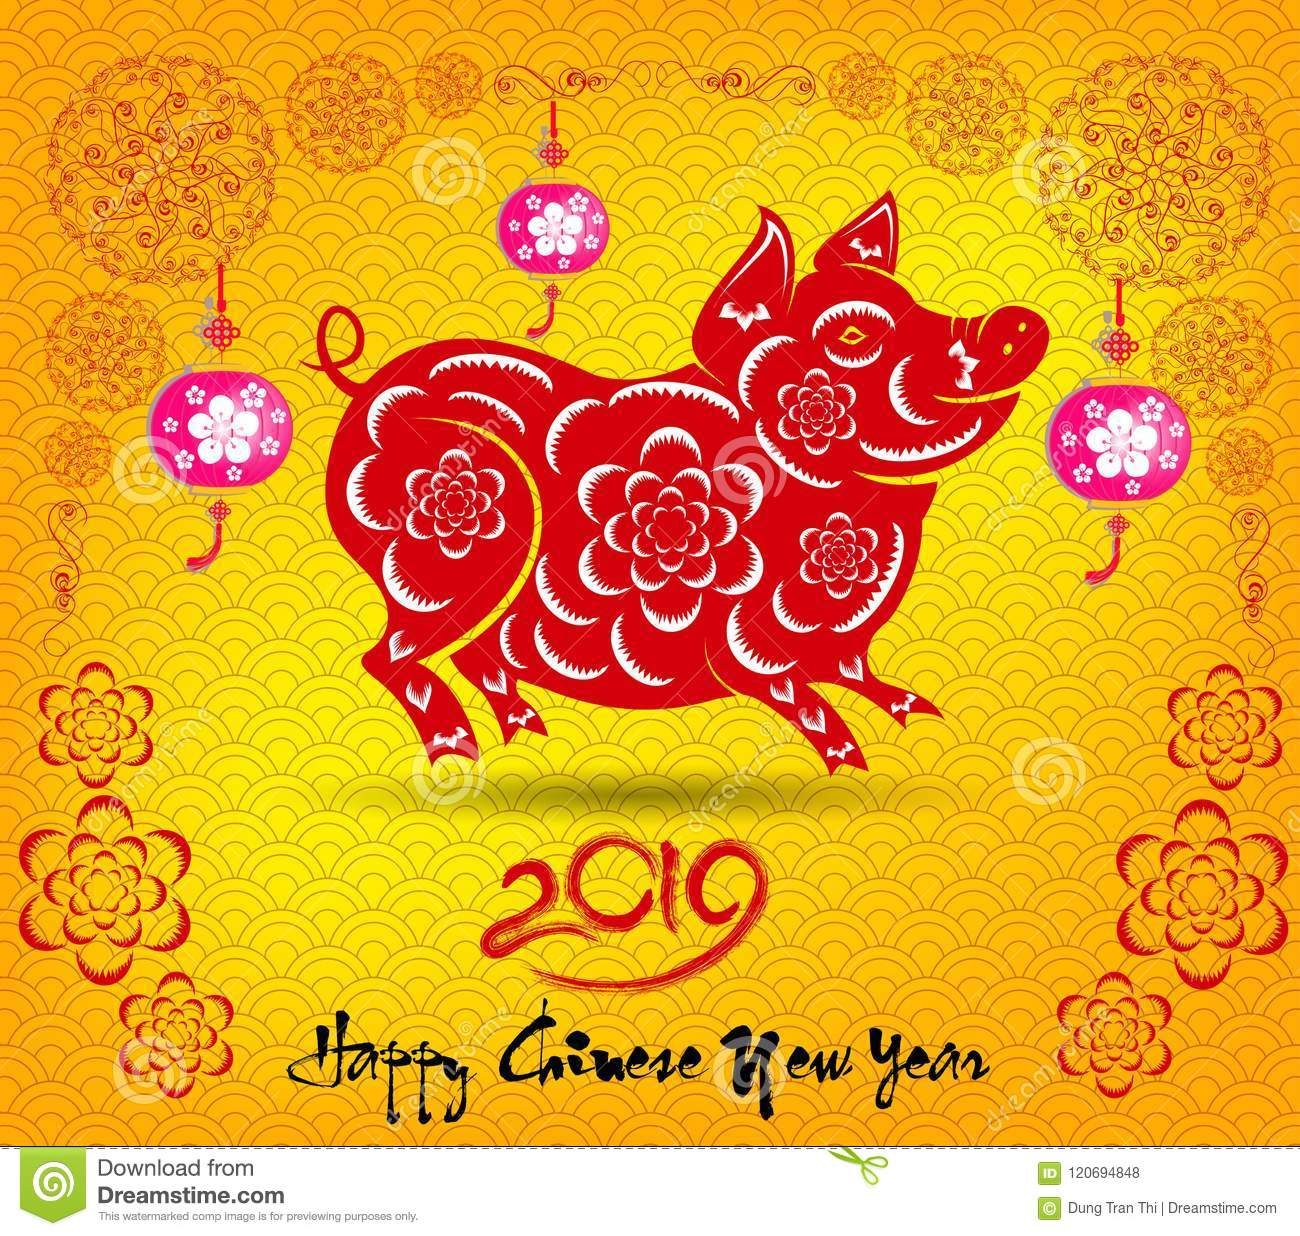 Happy Chinese New Year 2019 Year Of The Pig. Lunar New Year Stock.